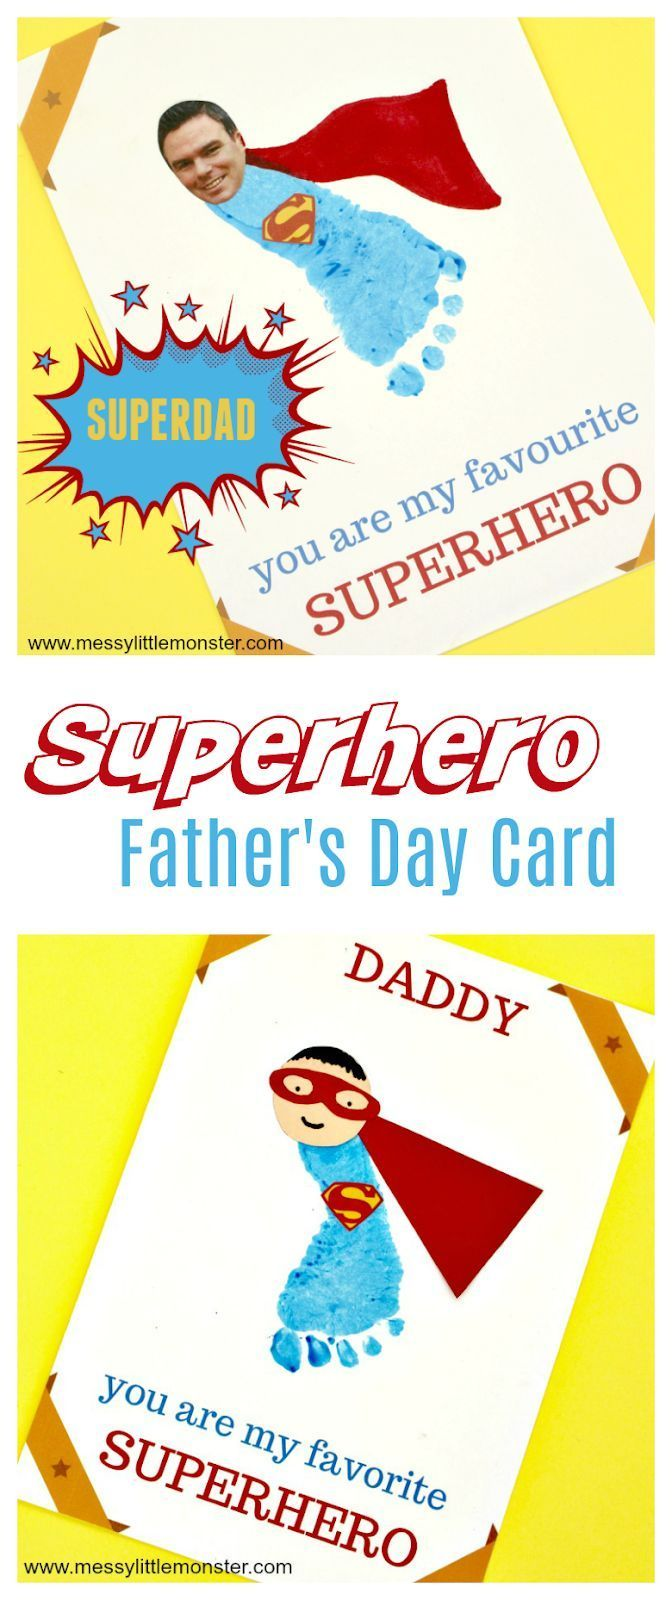 Printable Superhero Father's Day Card to make for Superdad ...